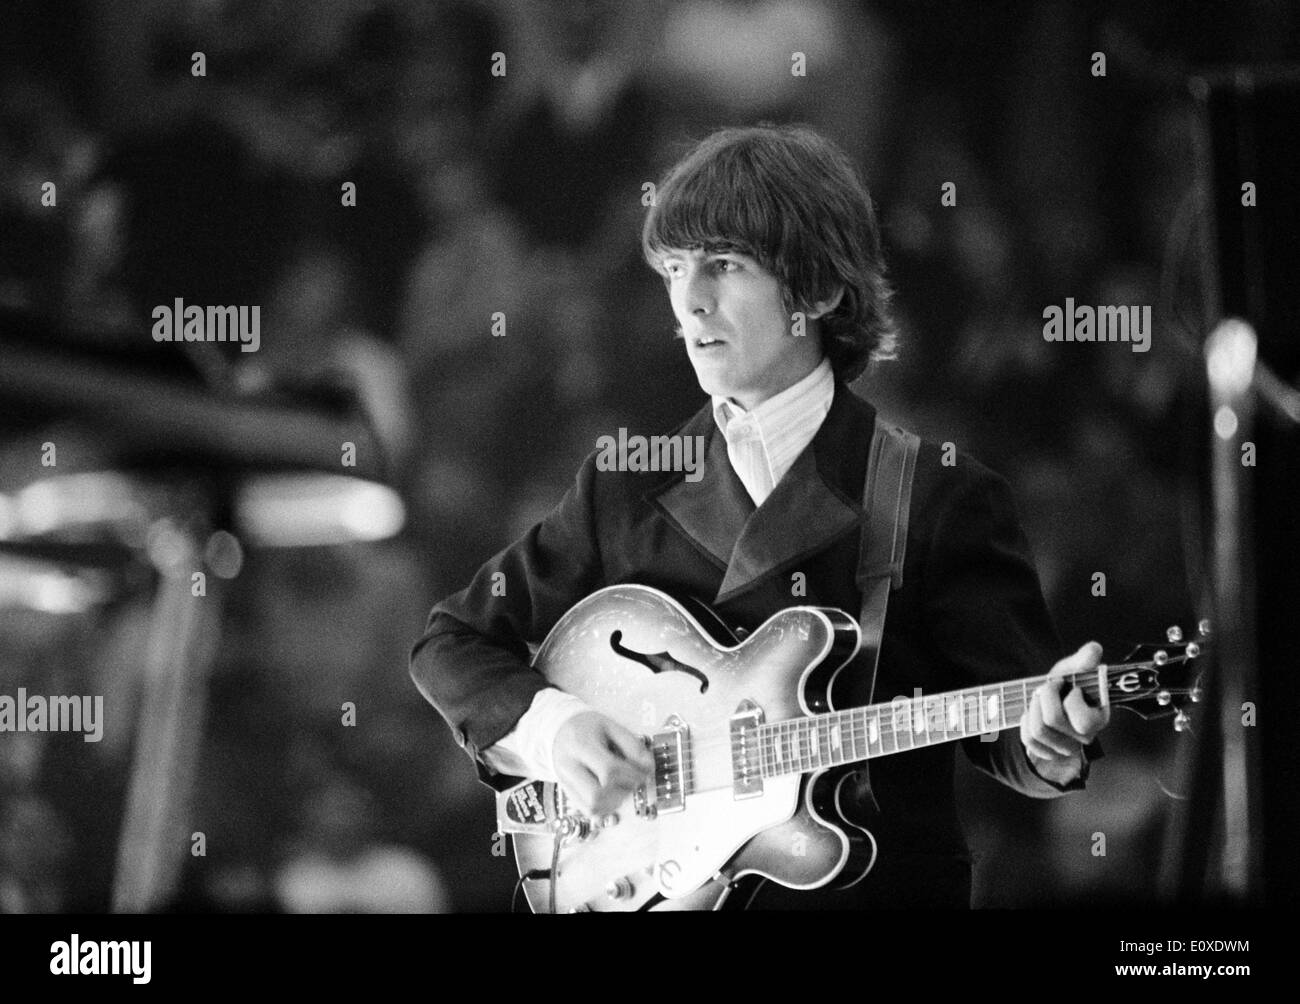 The Beatles' George Harrison pictured during a concert in Germany - Stock Image